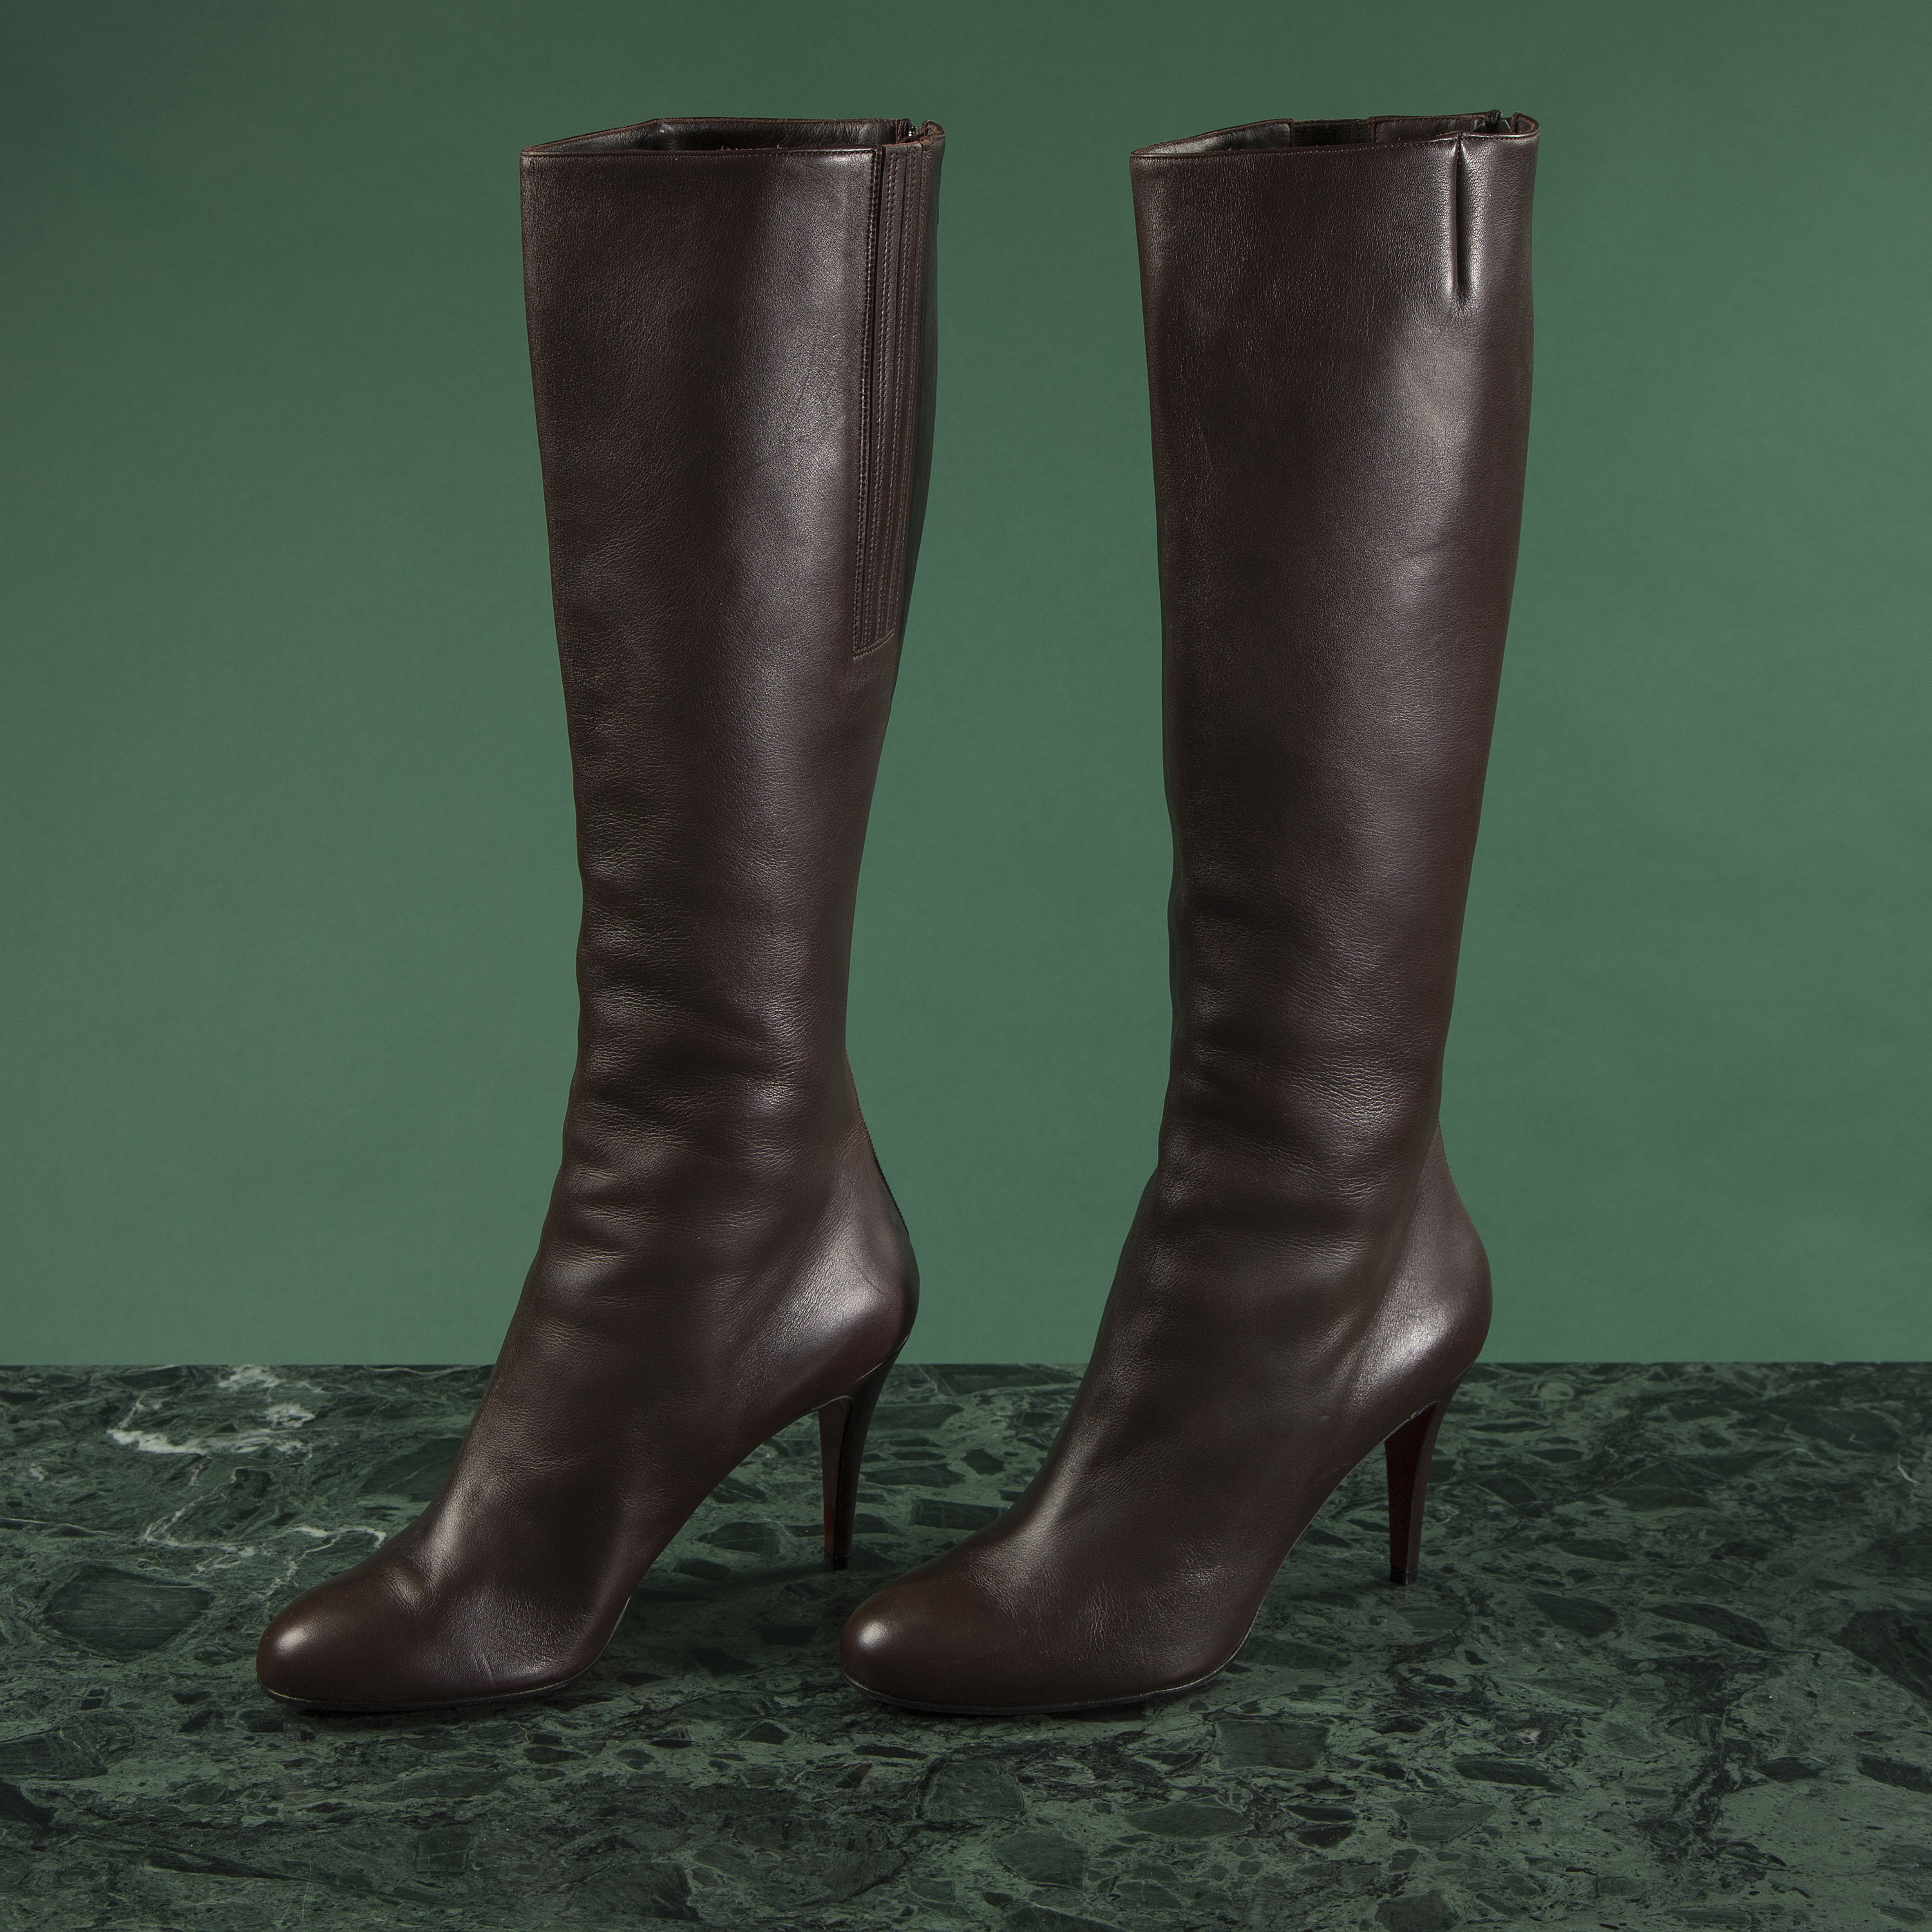 e8244078117 A pair of brown leather boots by Christian Louboutin, size 41 1/2 ...